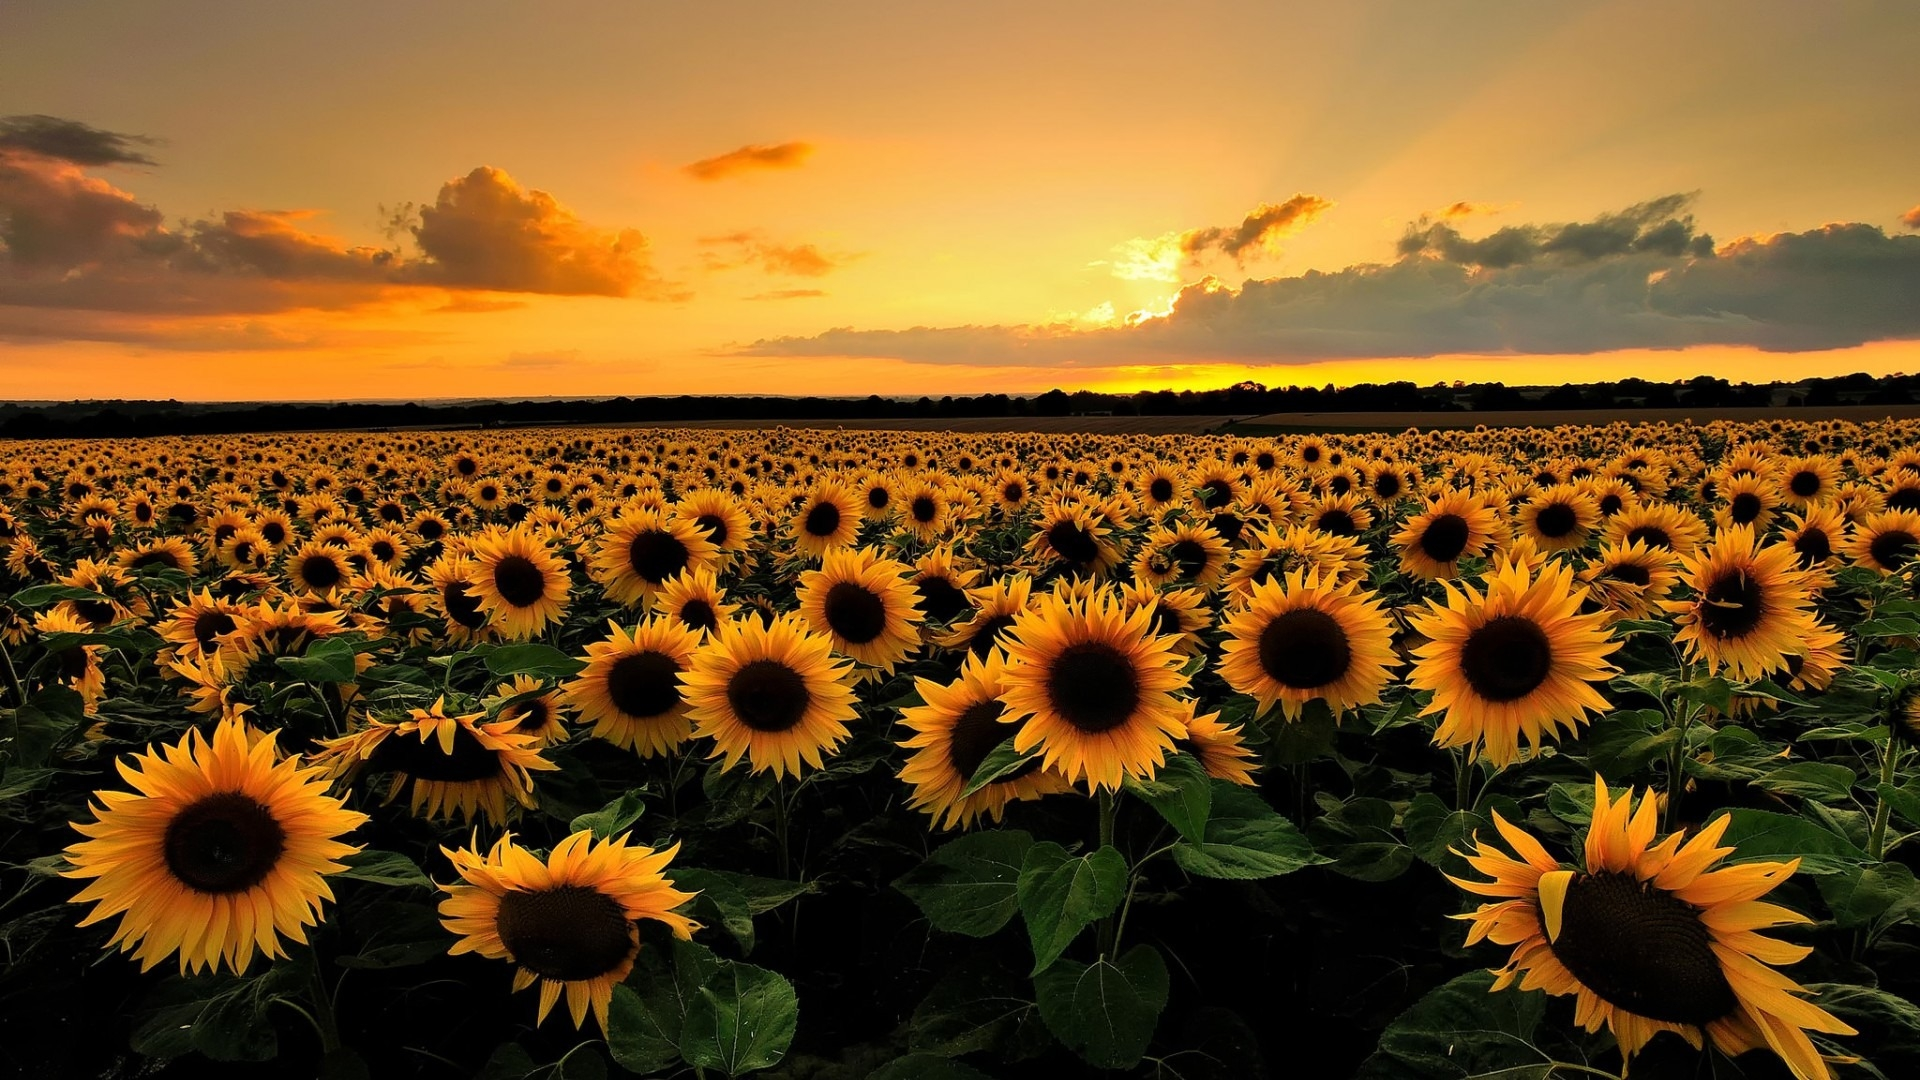 desktop-backgrounds-sunflowers-Download-Lovely-Sunflowers-Hd-Images-New-regarding-desk-wallpaper-wpc9004173